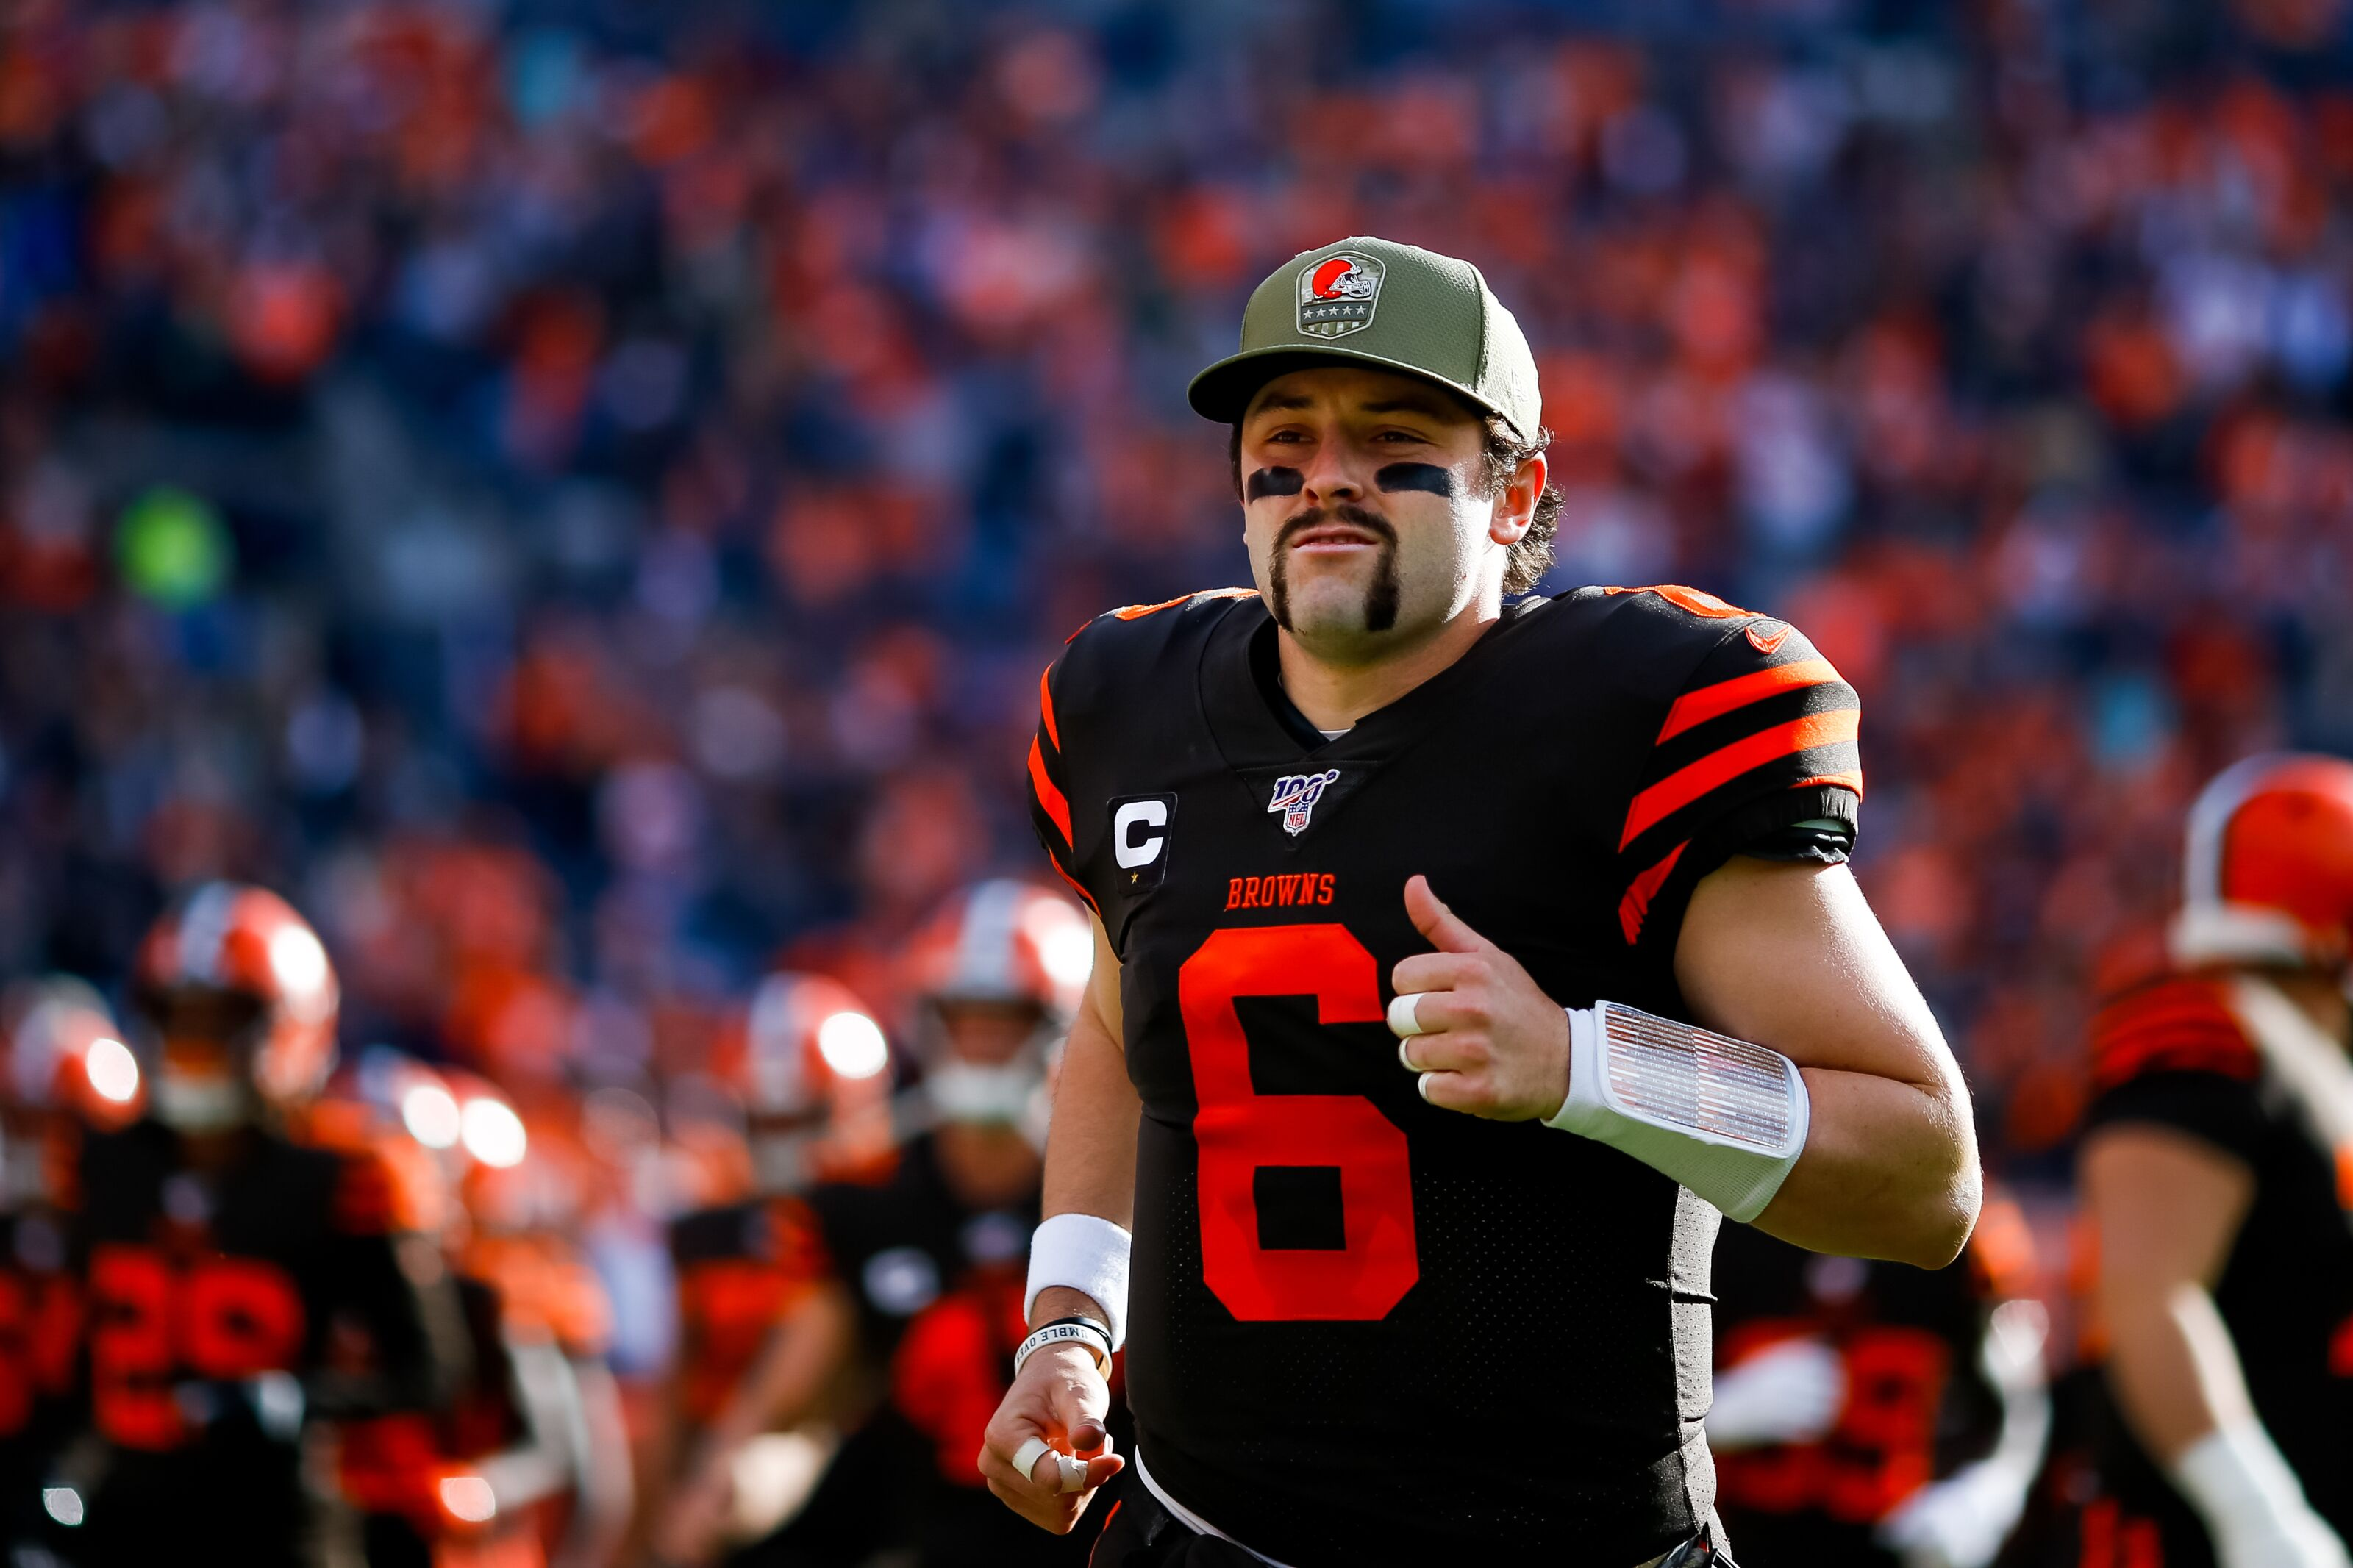 Cleveland Browns: Baker Mayfield talking with mature, proper mentality